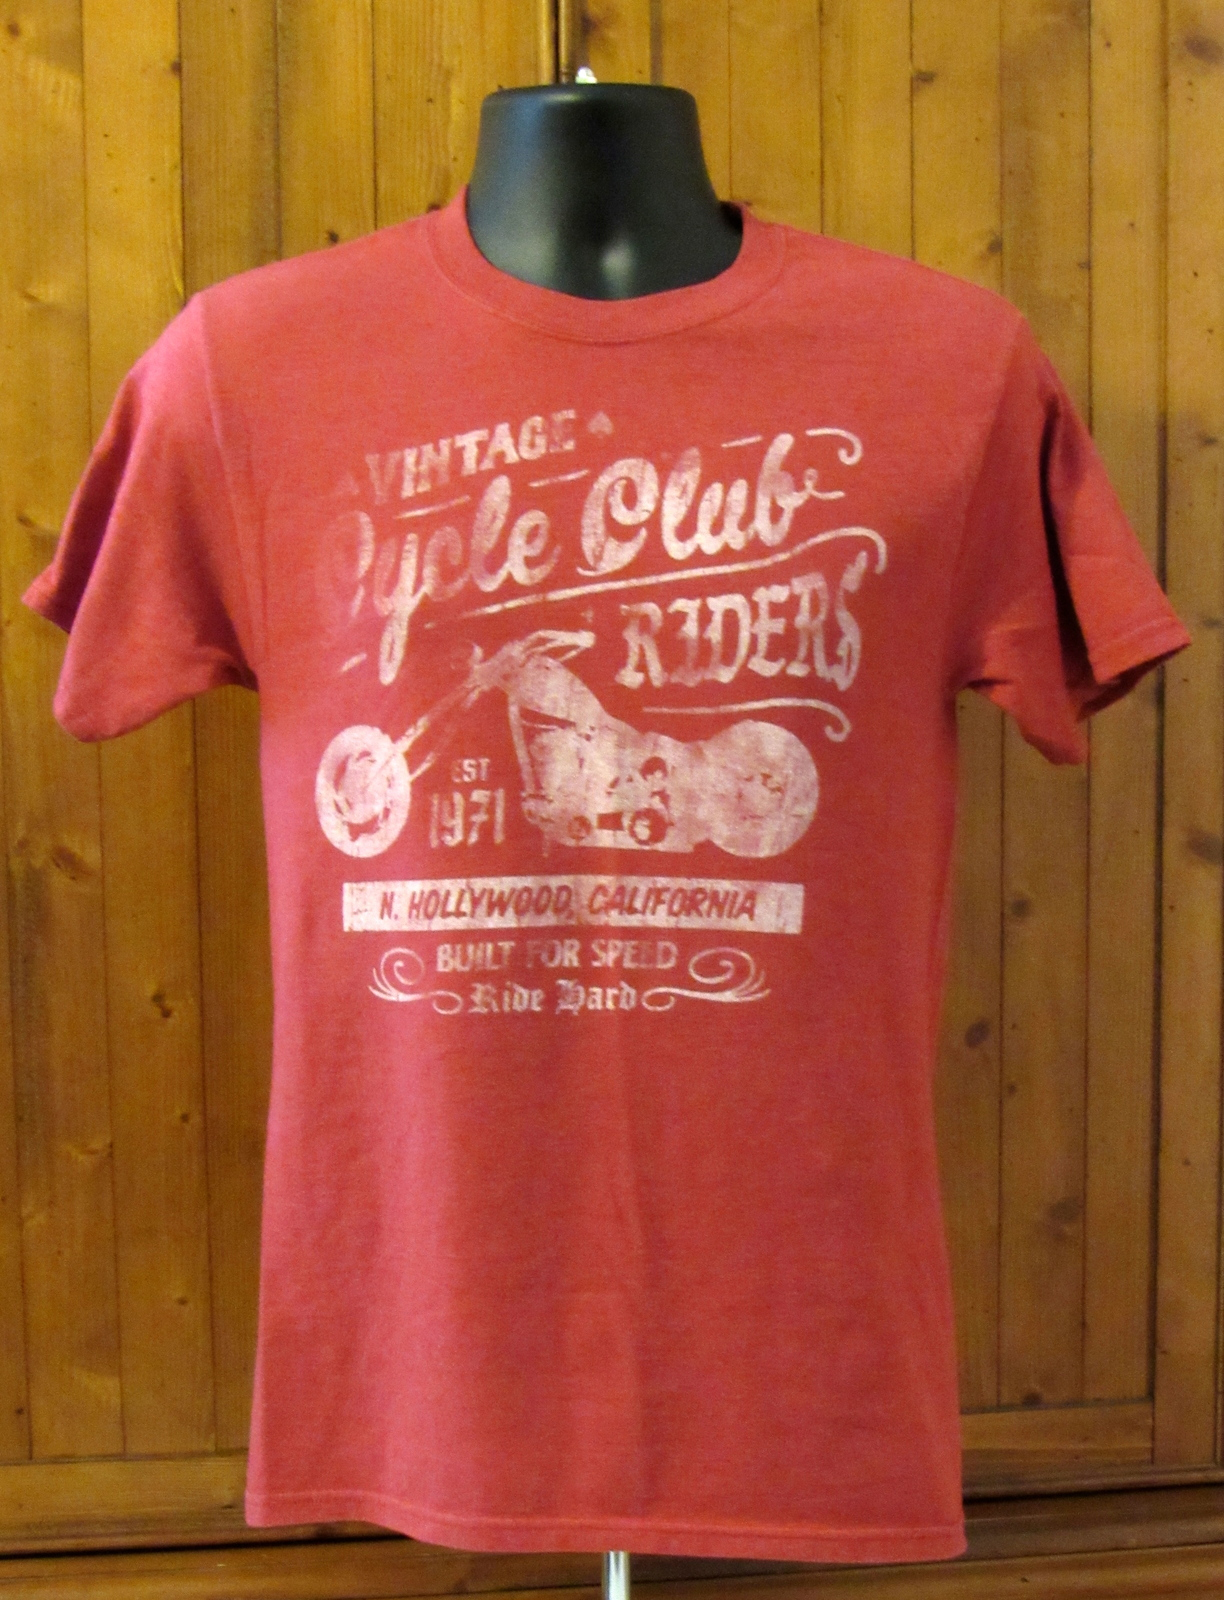 Hanes Men's Graphic Beefy Tee: Vintage Cycle Club Riders Red S: S (34/36) CH/P